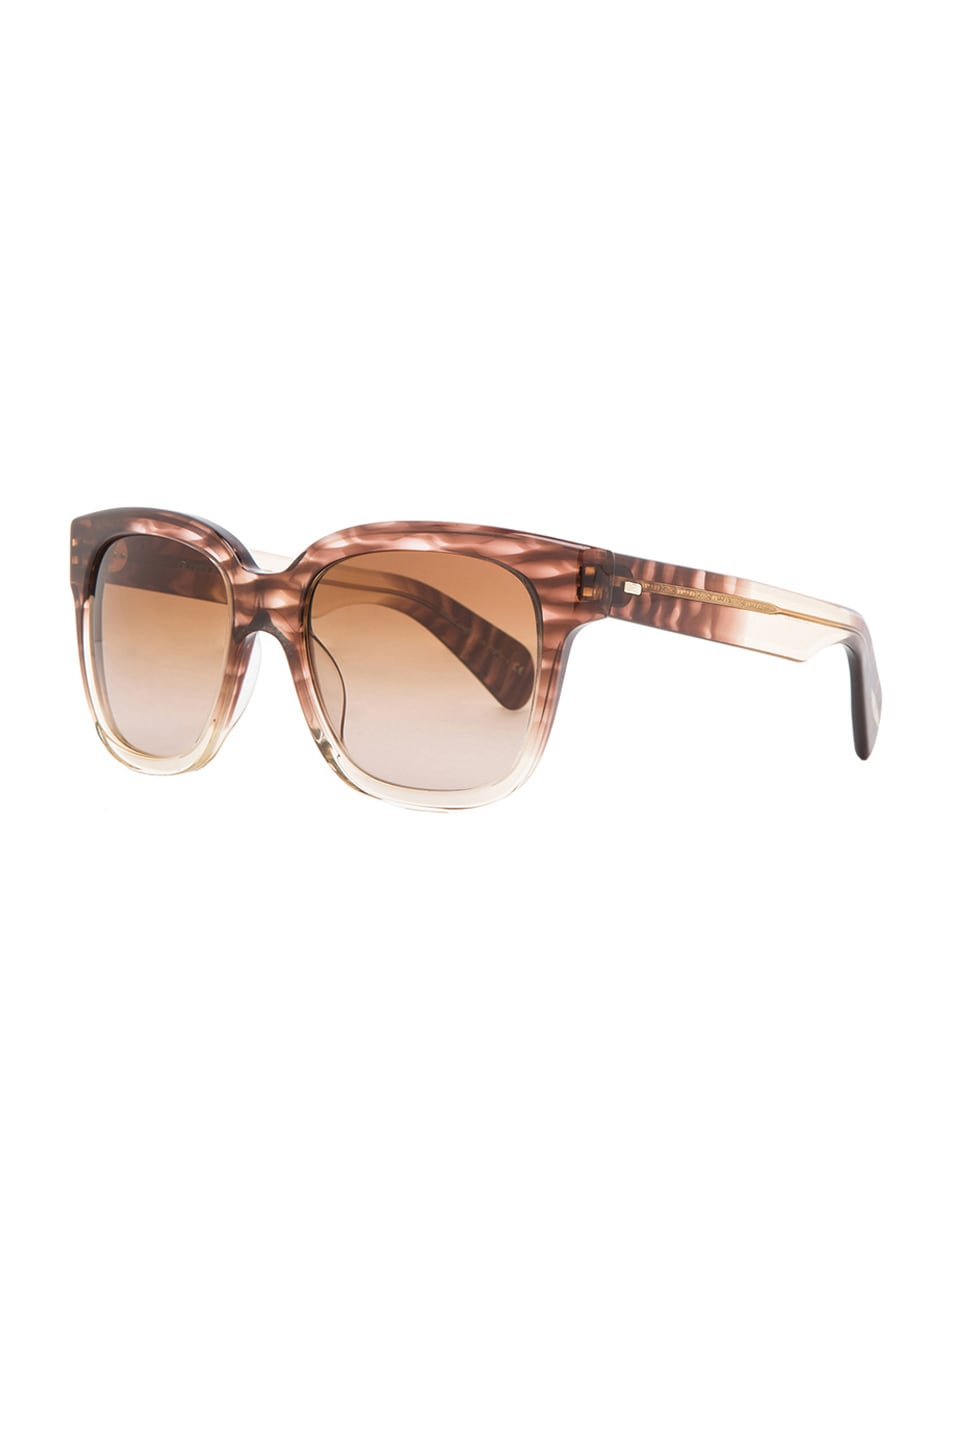 Image 2 of Oliver Peoples Brinley Sunglasses in Henna Gradient